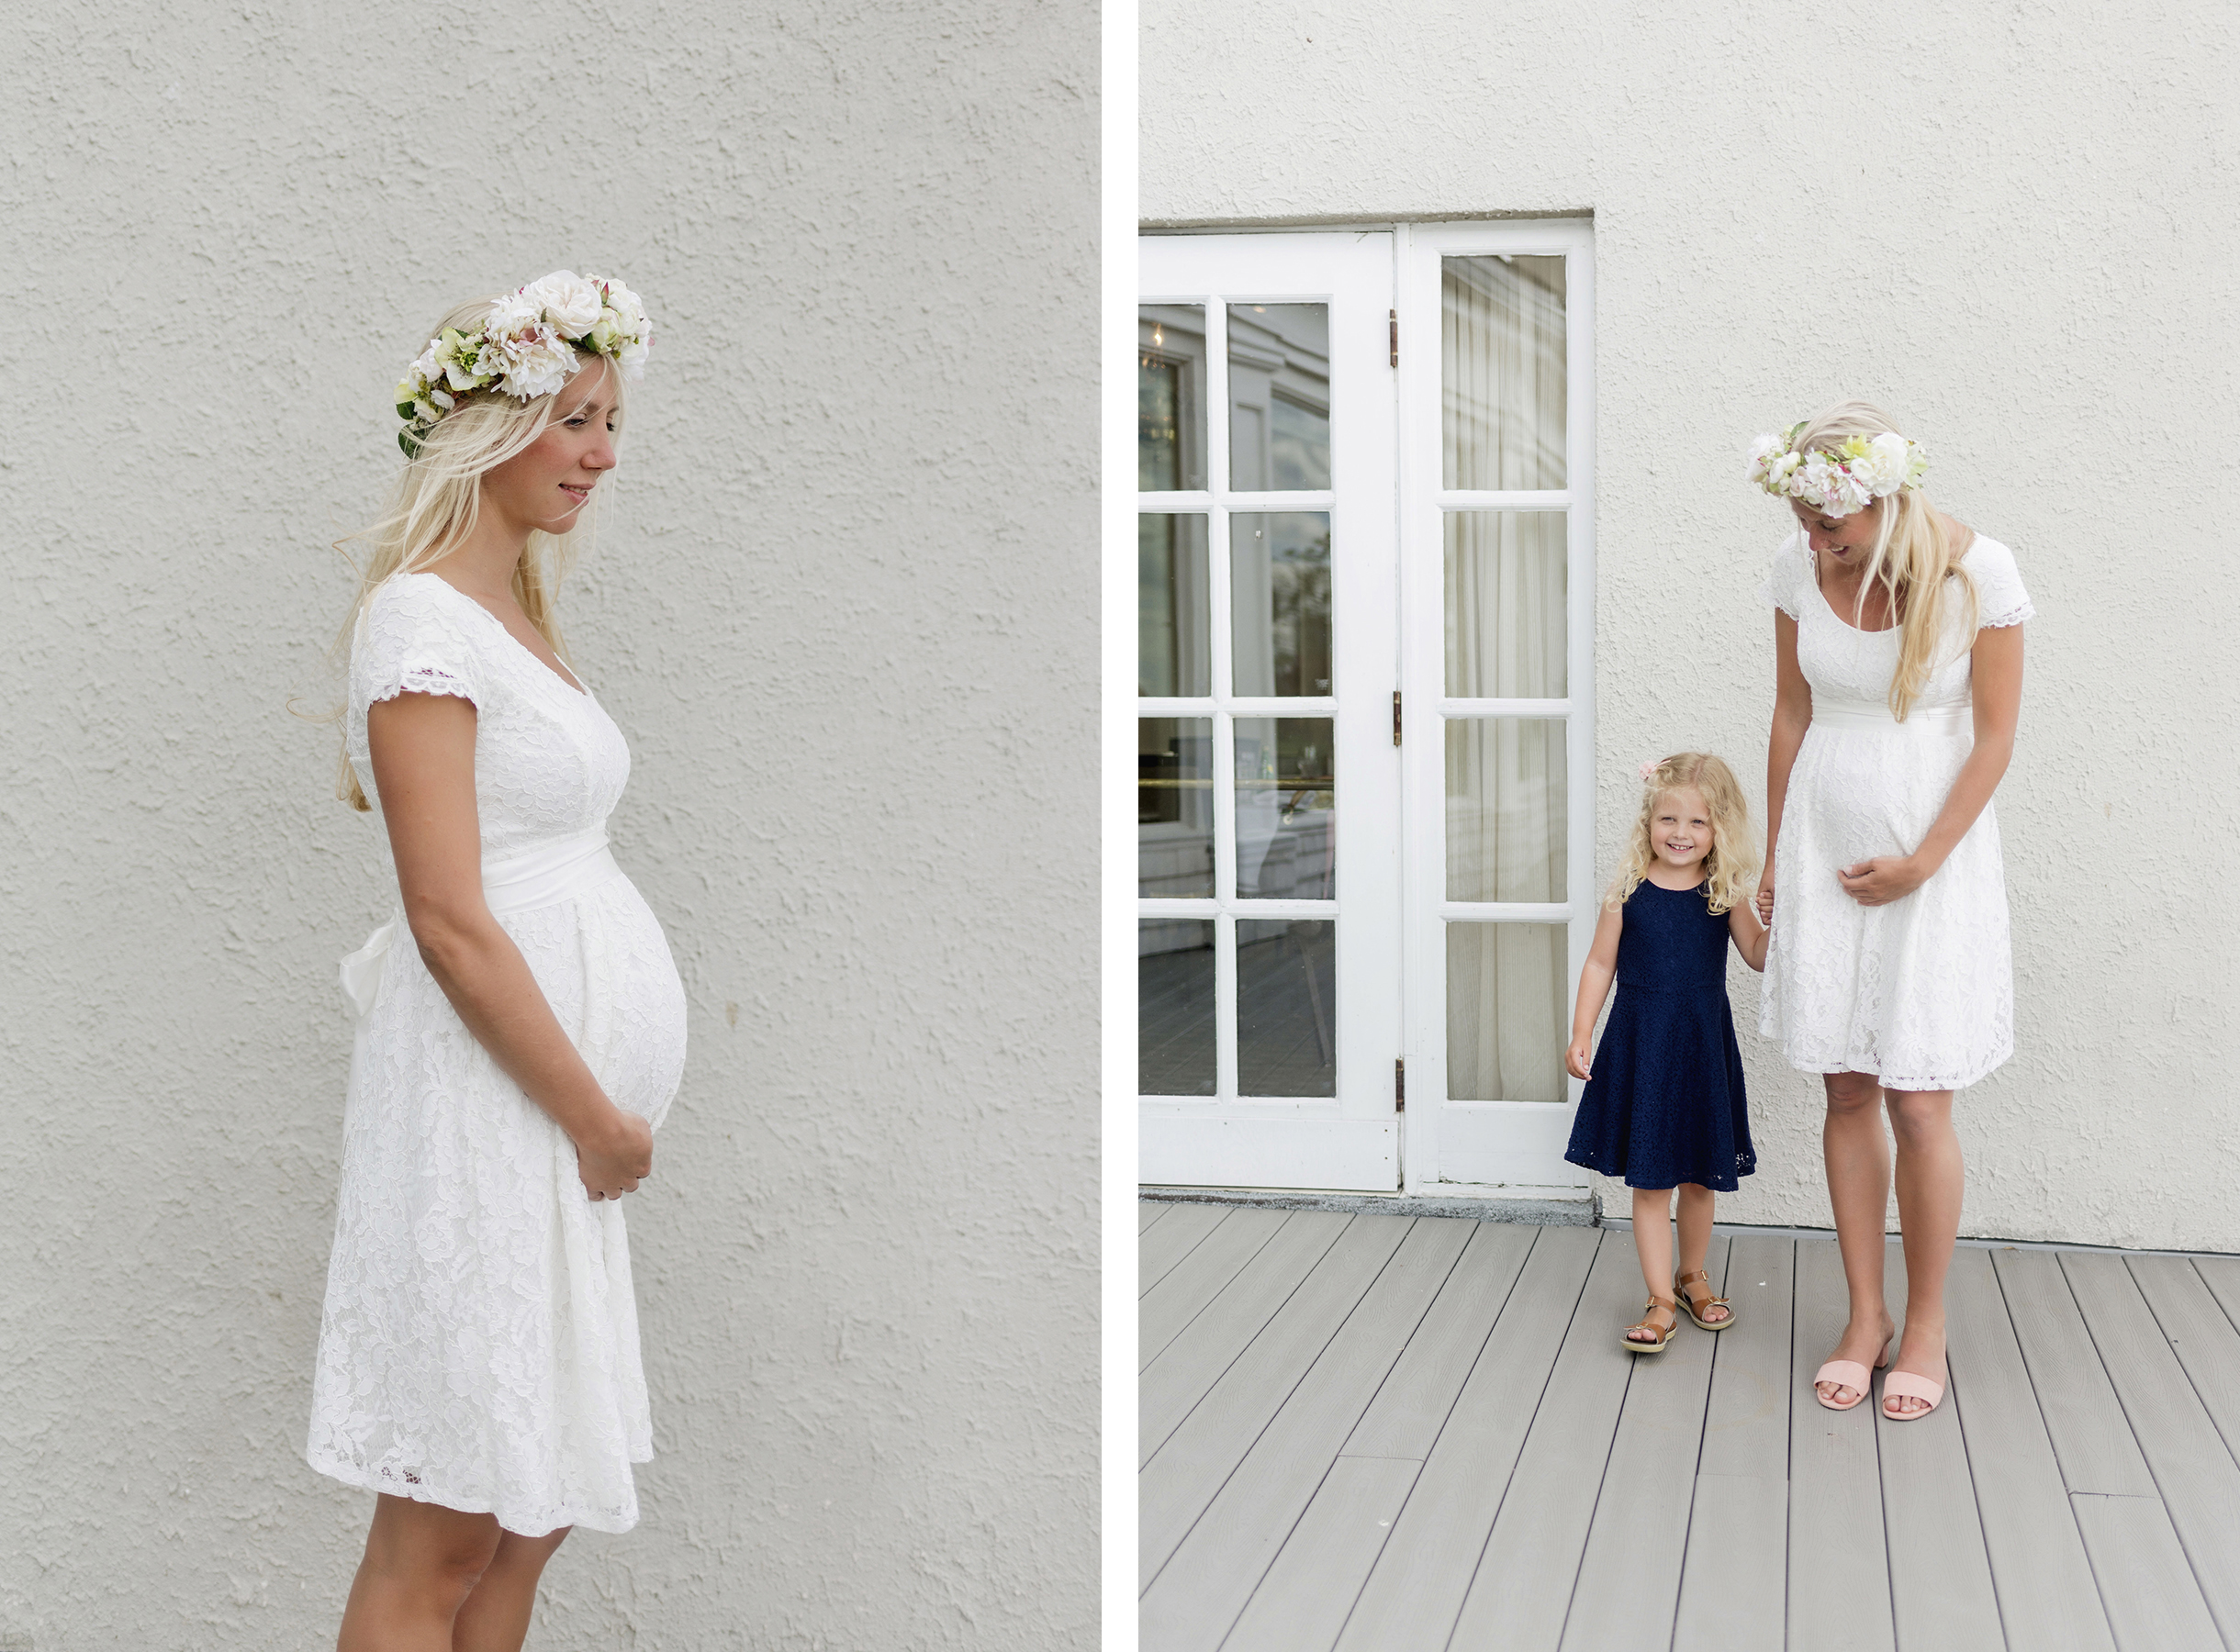 193447cc6 ... rustic details Maternity photoshoot with flower crown | A wild + boho baby  shower with pastel colours + ...